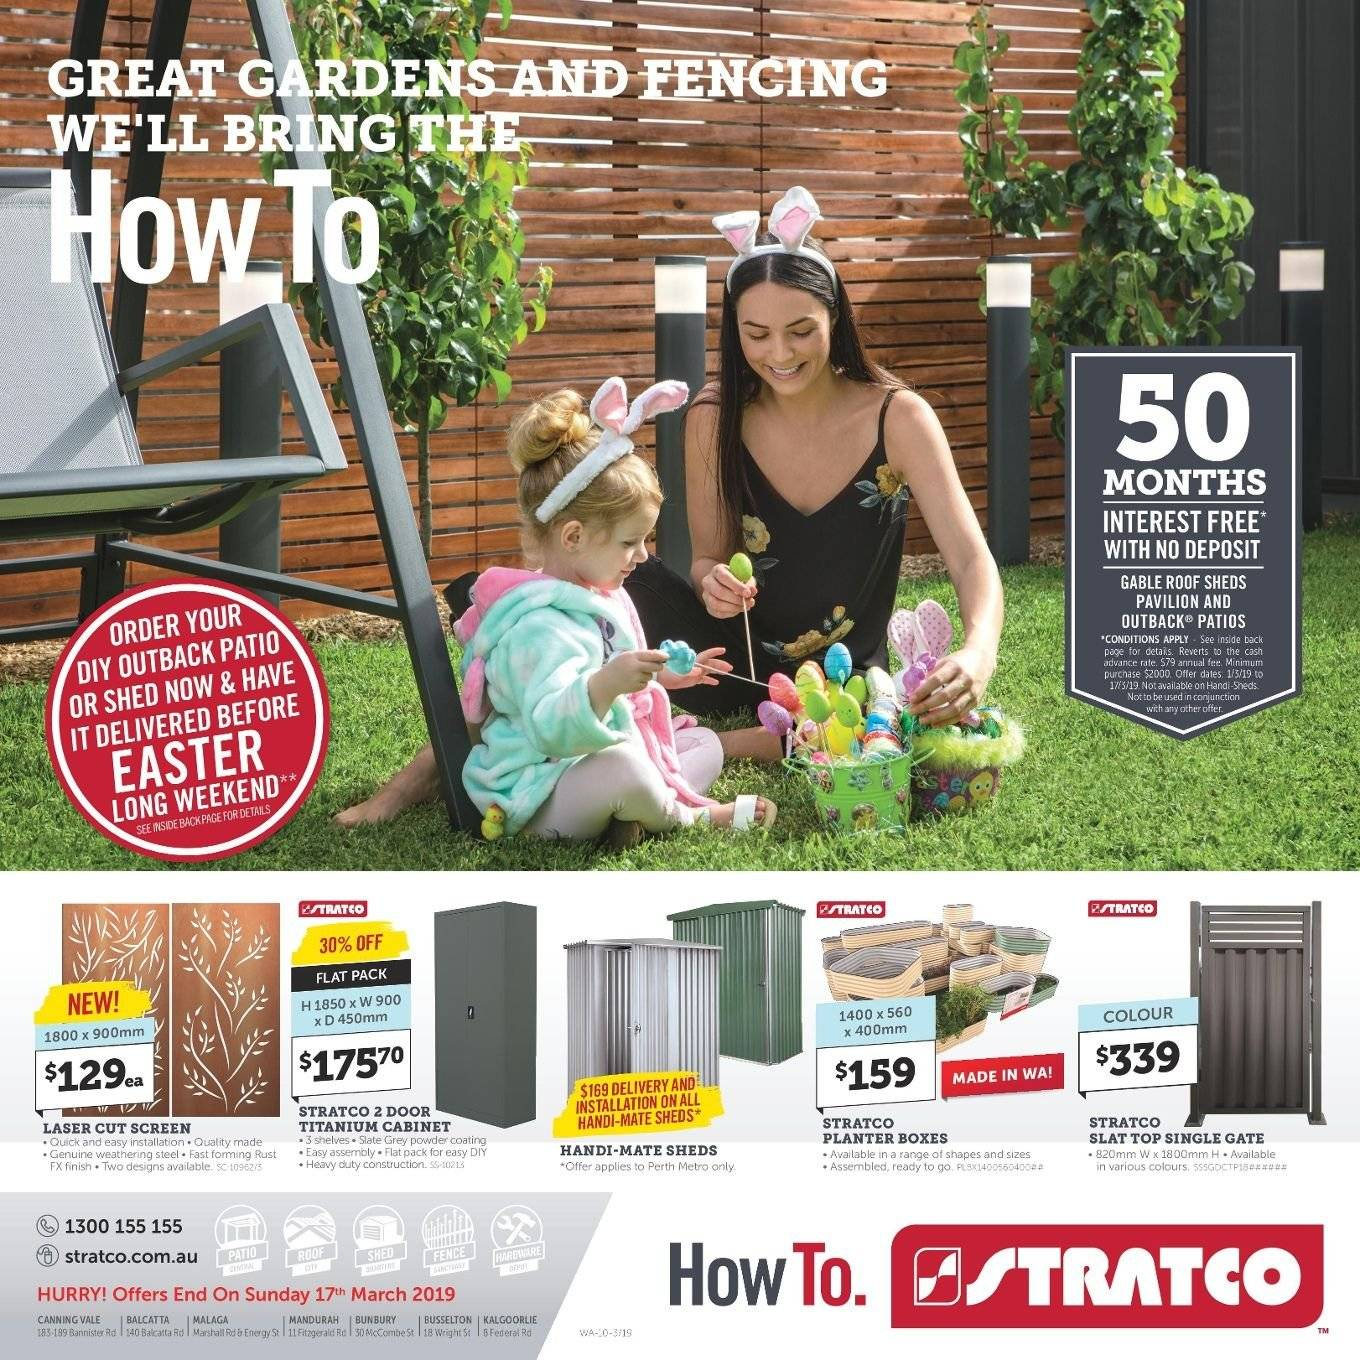 Stratco catalogue and weekly specials 1 3 2019 - 17 3 2019